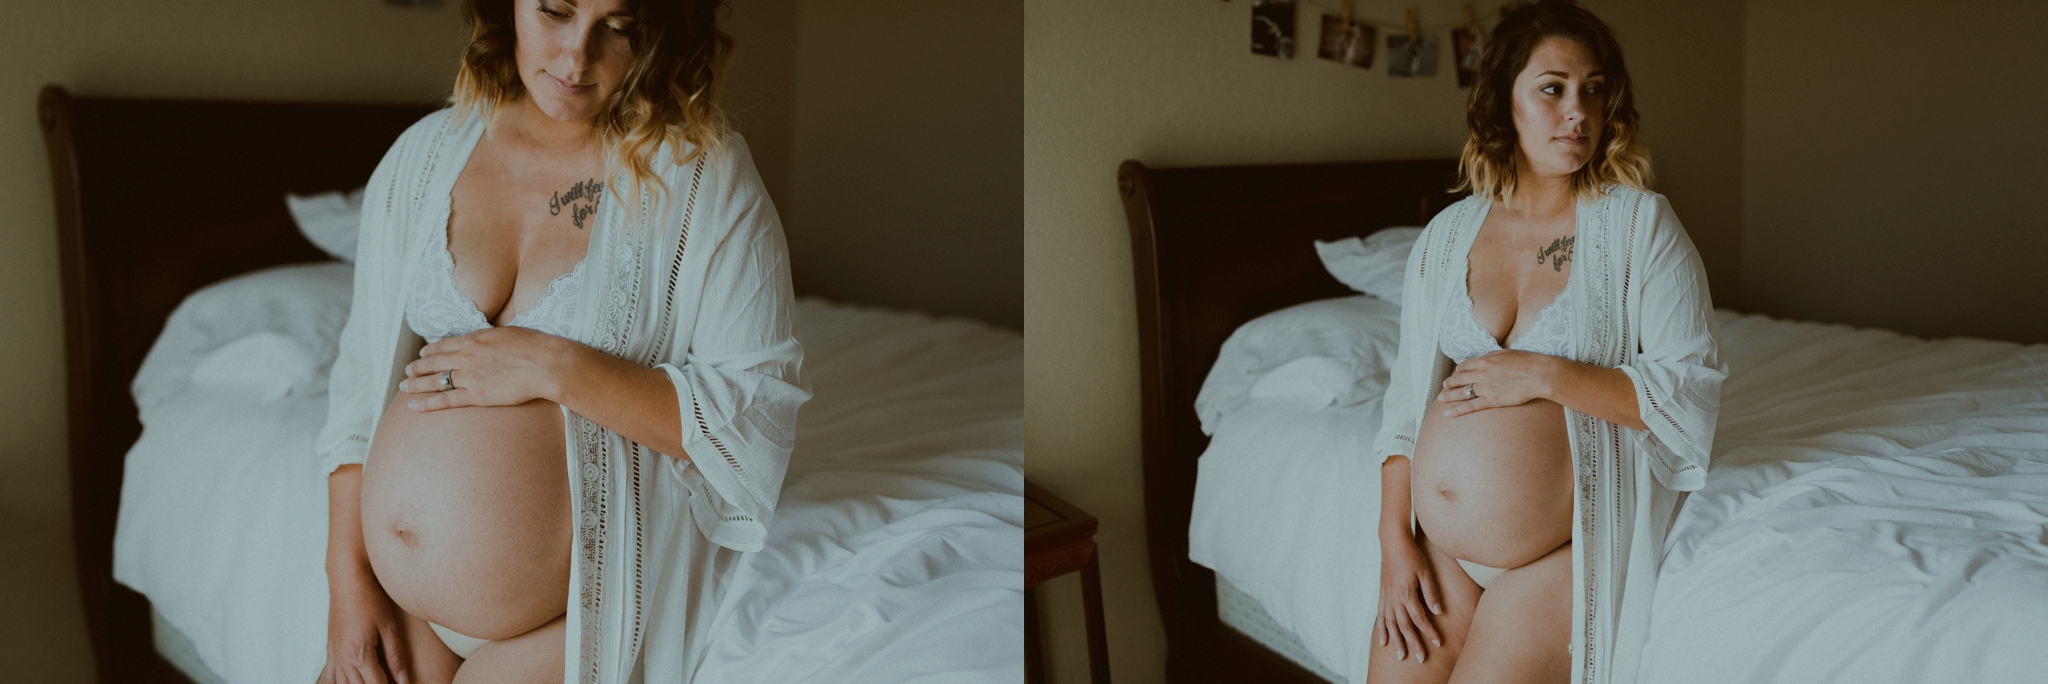 intimate-lifestyle-in-home-maternity-session-corpus-christi-maternity-photographer-kerlyn-van-gelder-photography